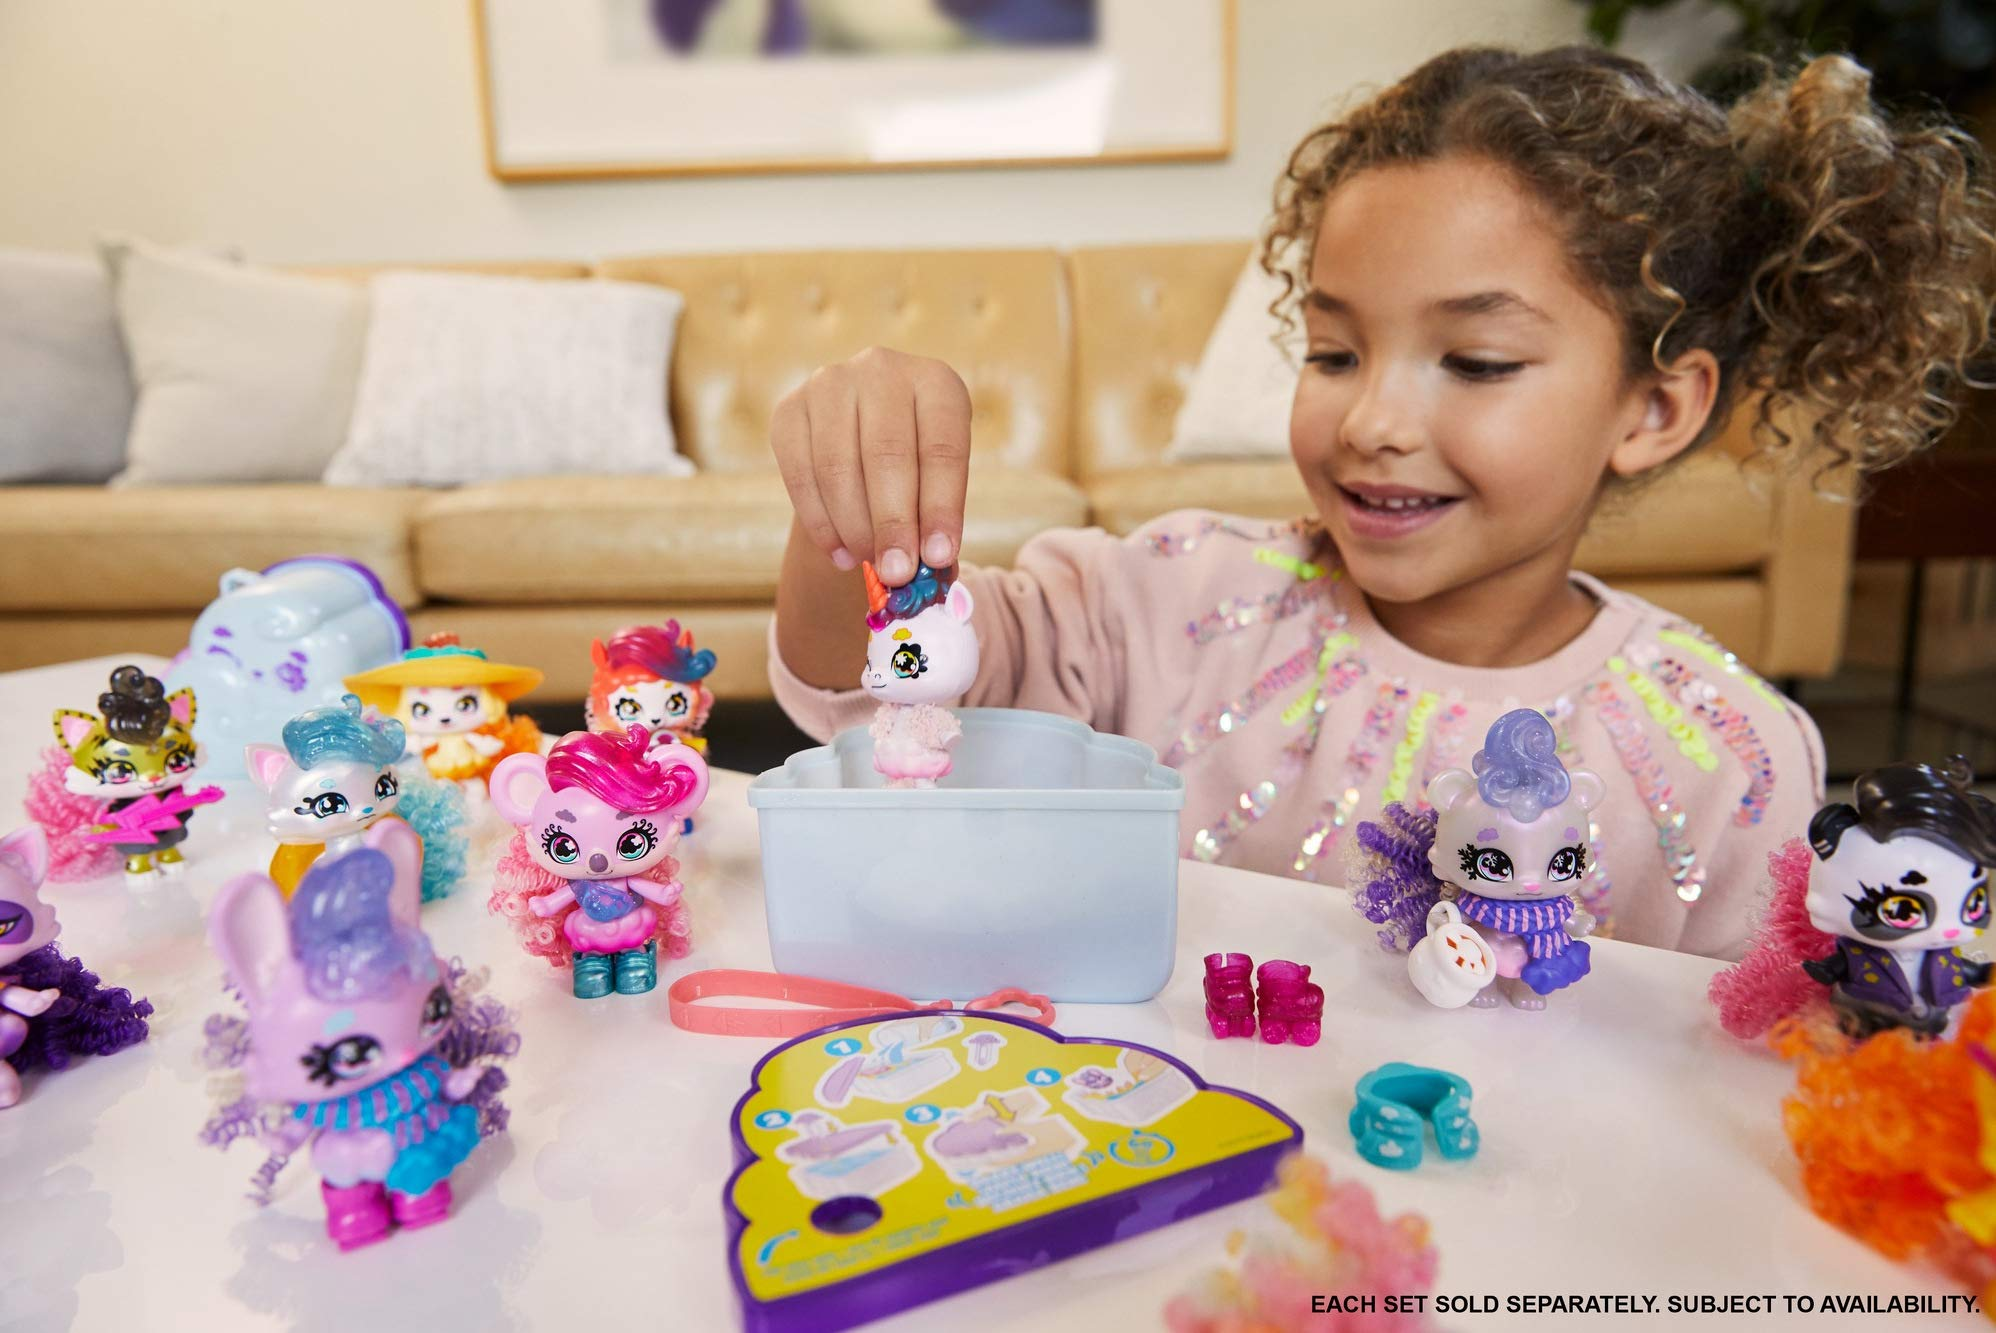 Mattel ​​Cloudees Cloud Themed Toy with Hidden Surprise, Interactive Cloud Toy with Accessories, Toys for Kids 4 and Up​